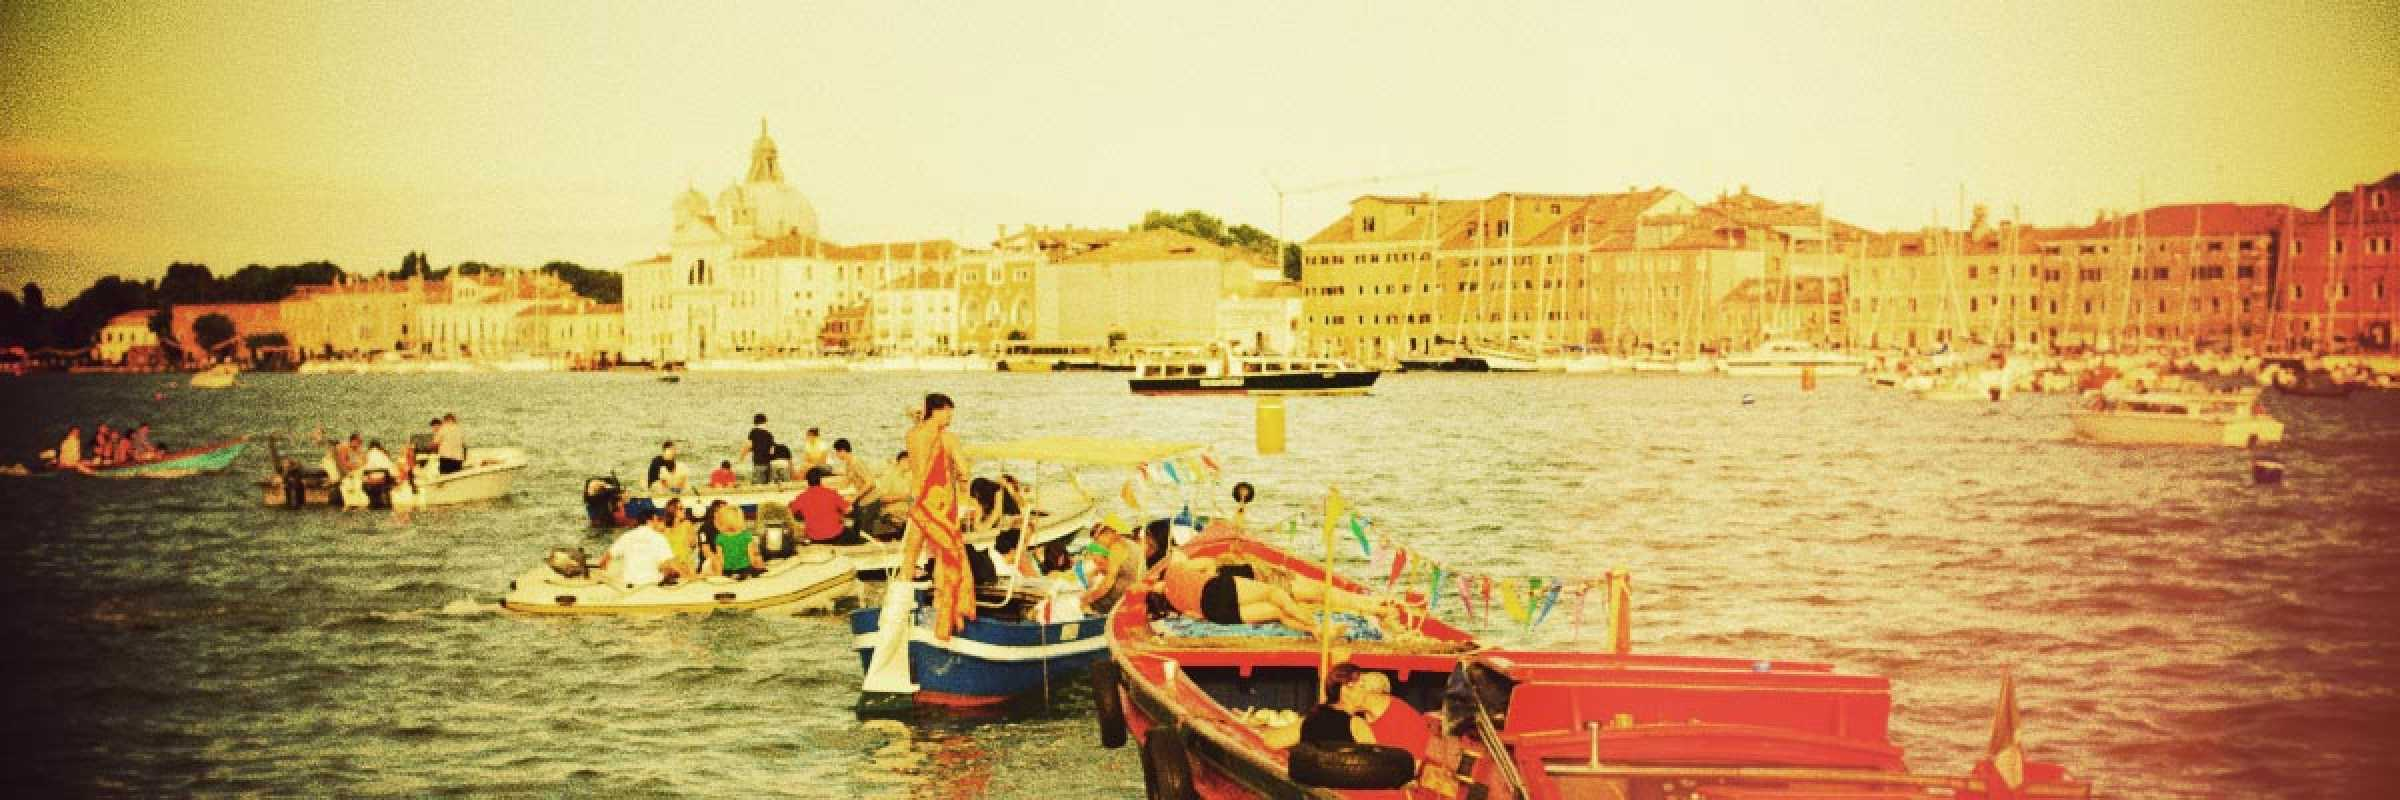 Group of boats in preparation for the Feast of the Redentore.